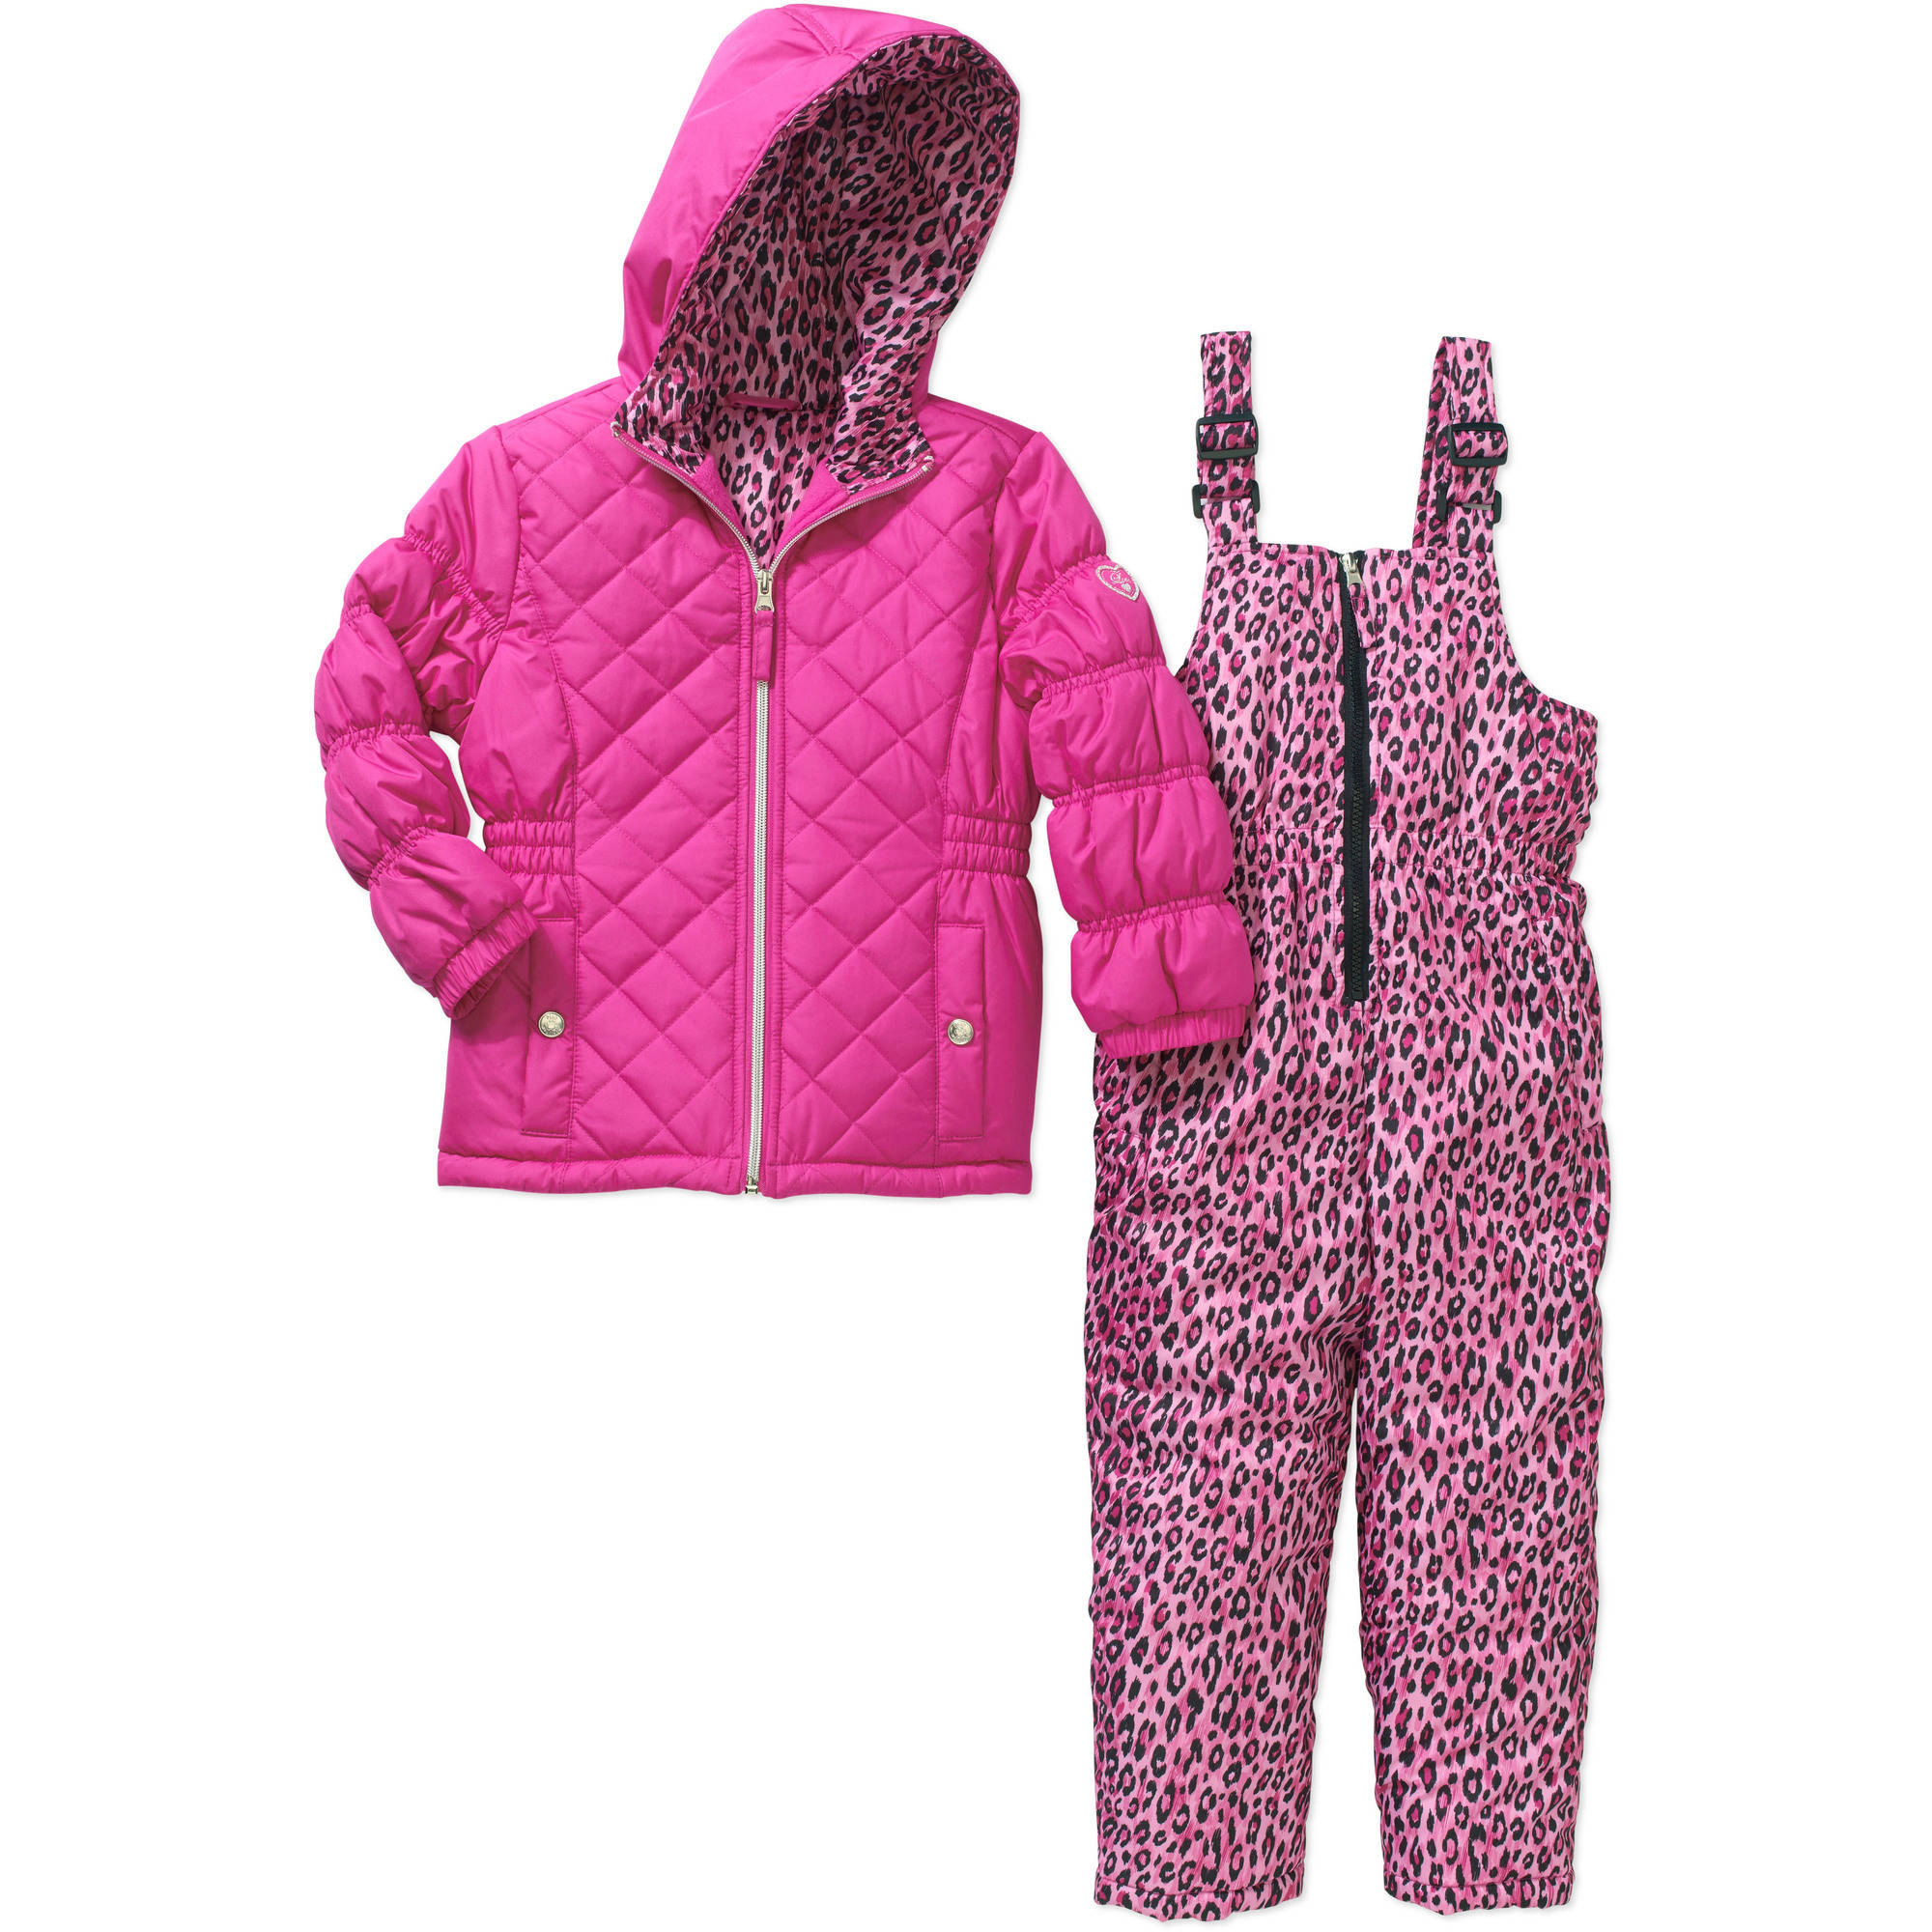 Pink Platinum Girls' Quilted Top and Cheetah Print Bottom Snowsuit with Pockets